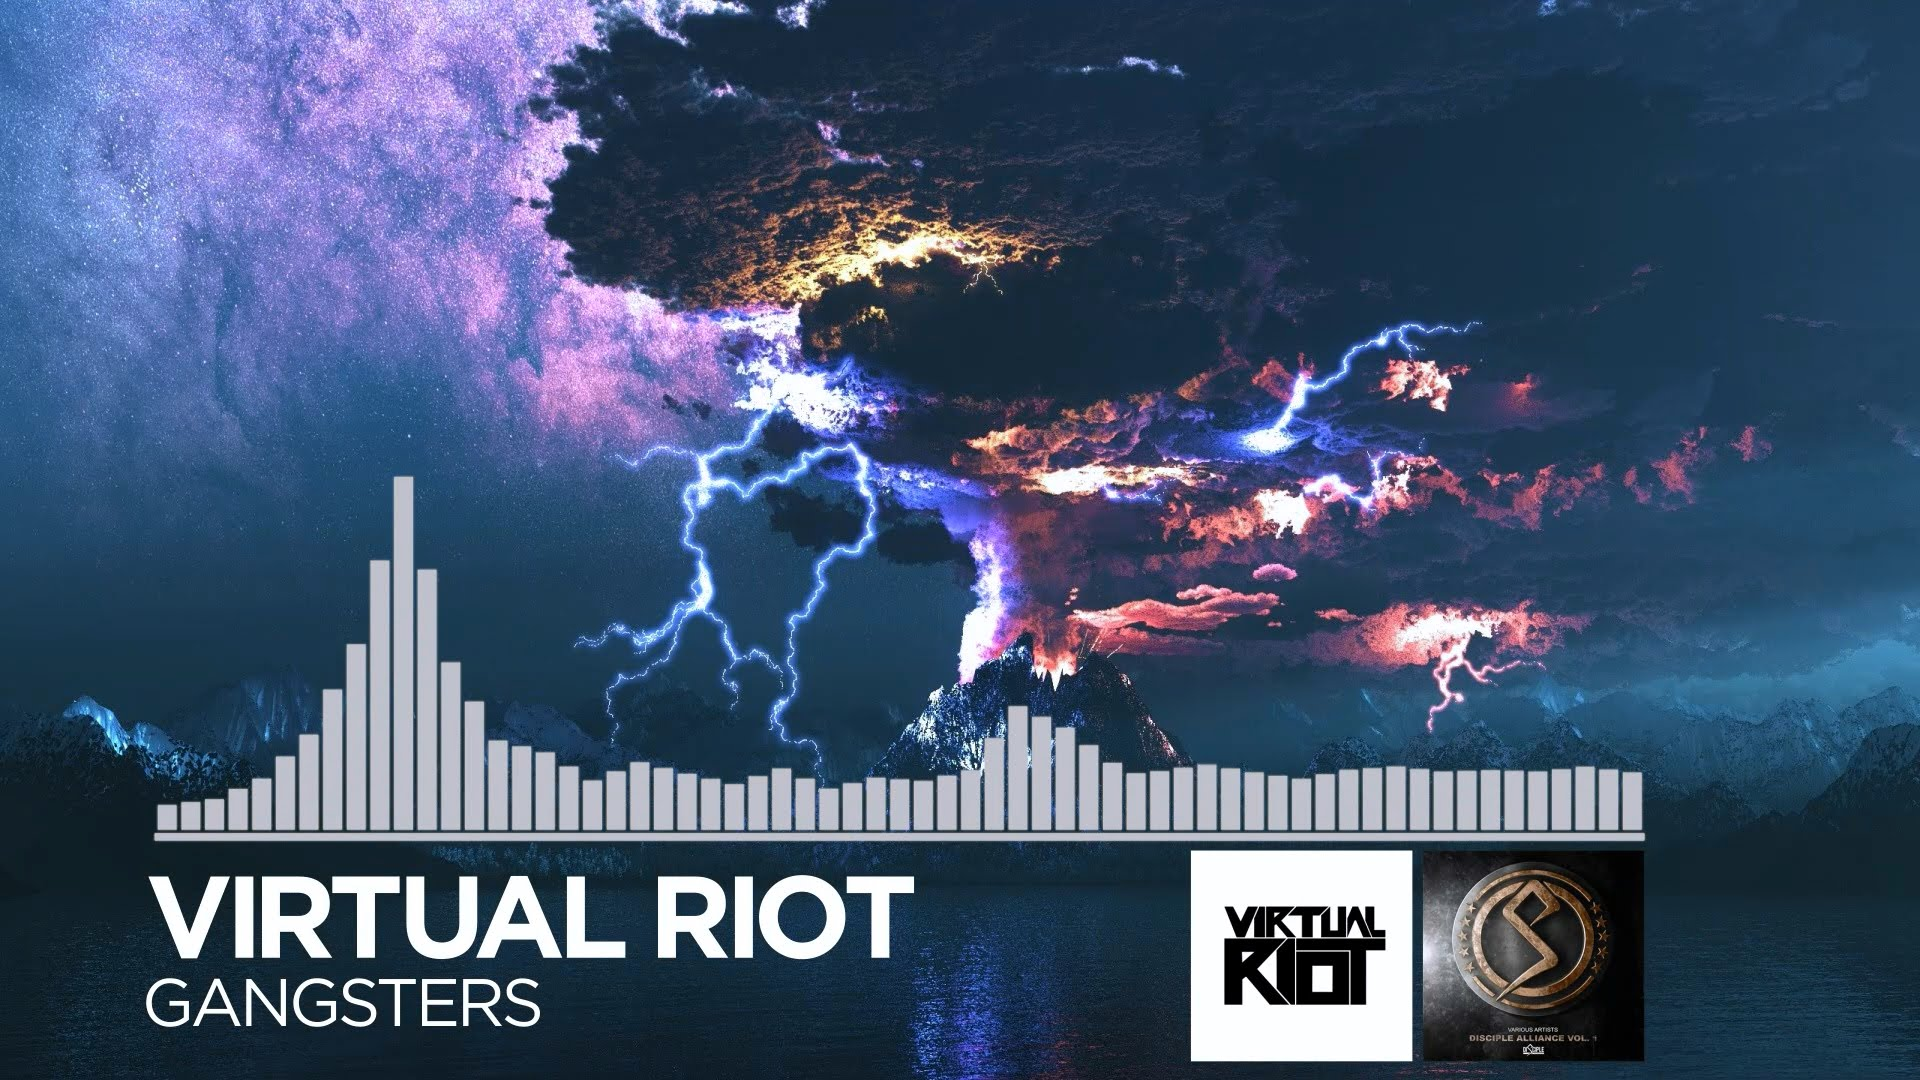 EDM] Virtual Riot   Gangsters [Disciple Recordings] 1920x1080